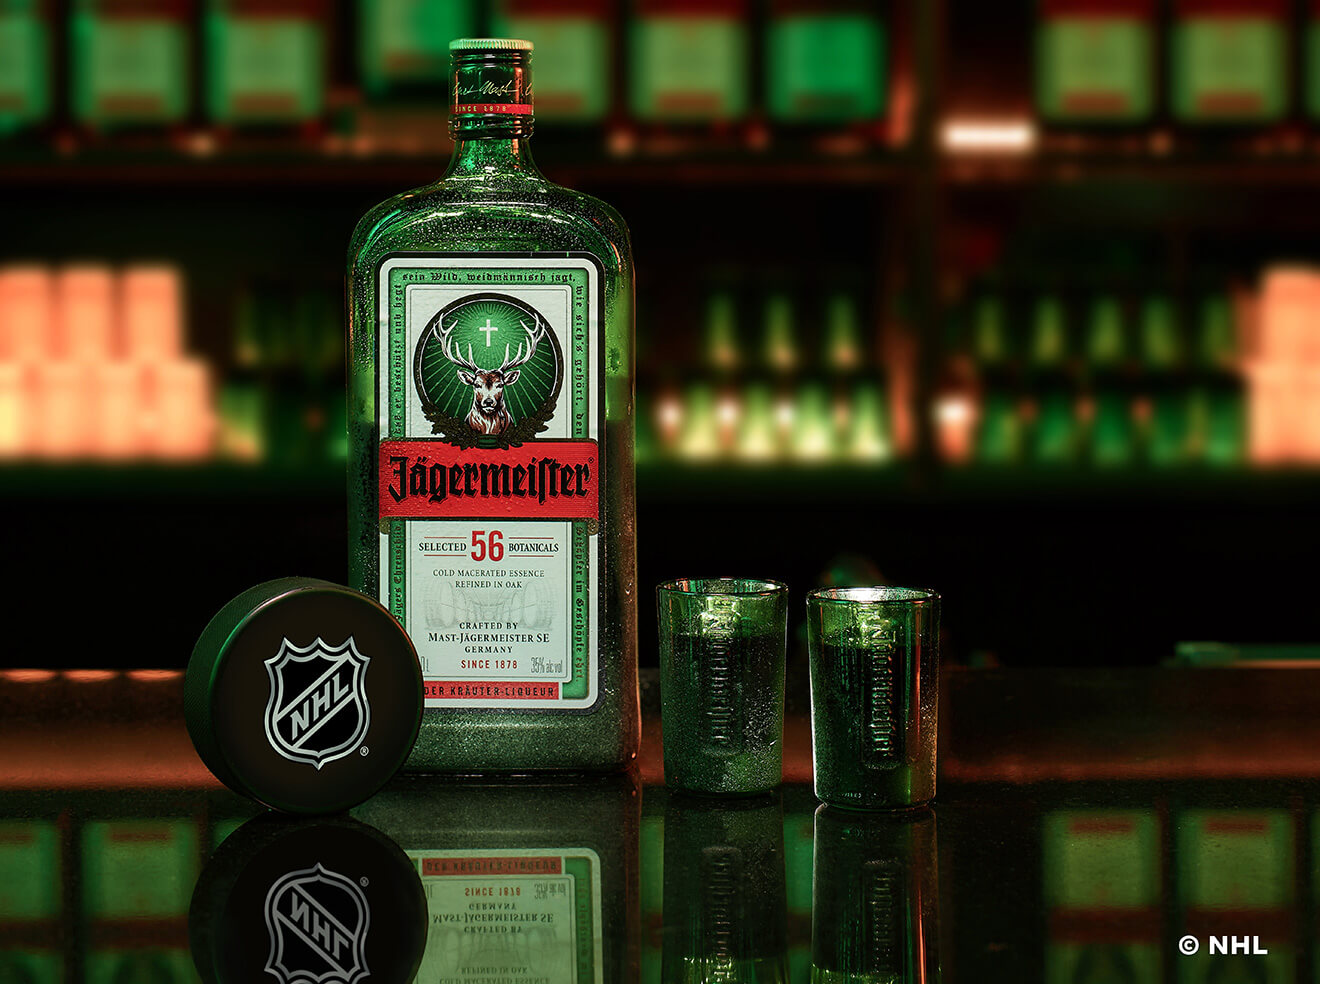 Jägermeister-and-NHL-Announce-Partnership, bottle and shots on the bar